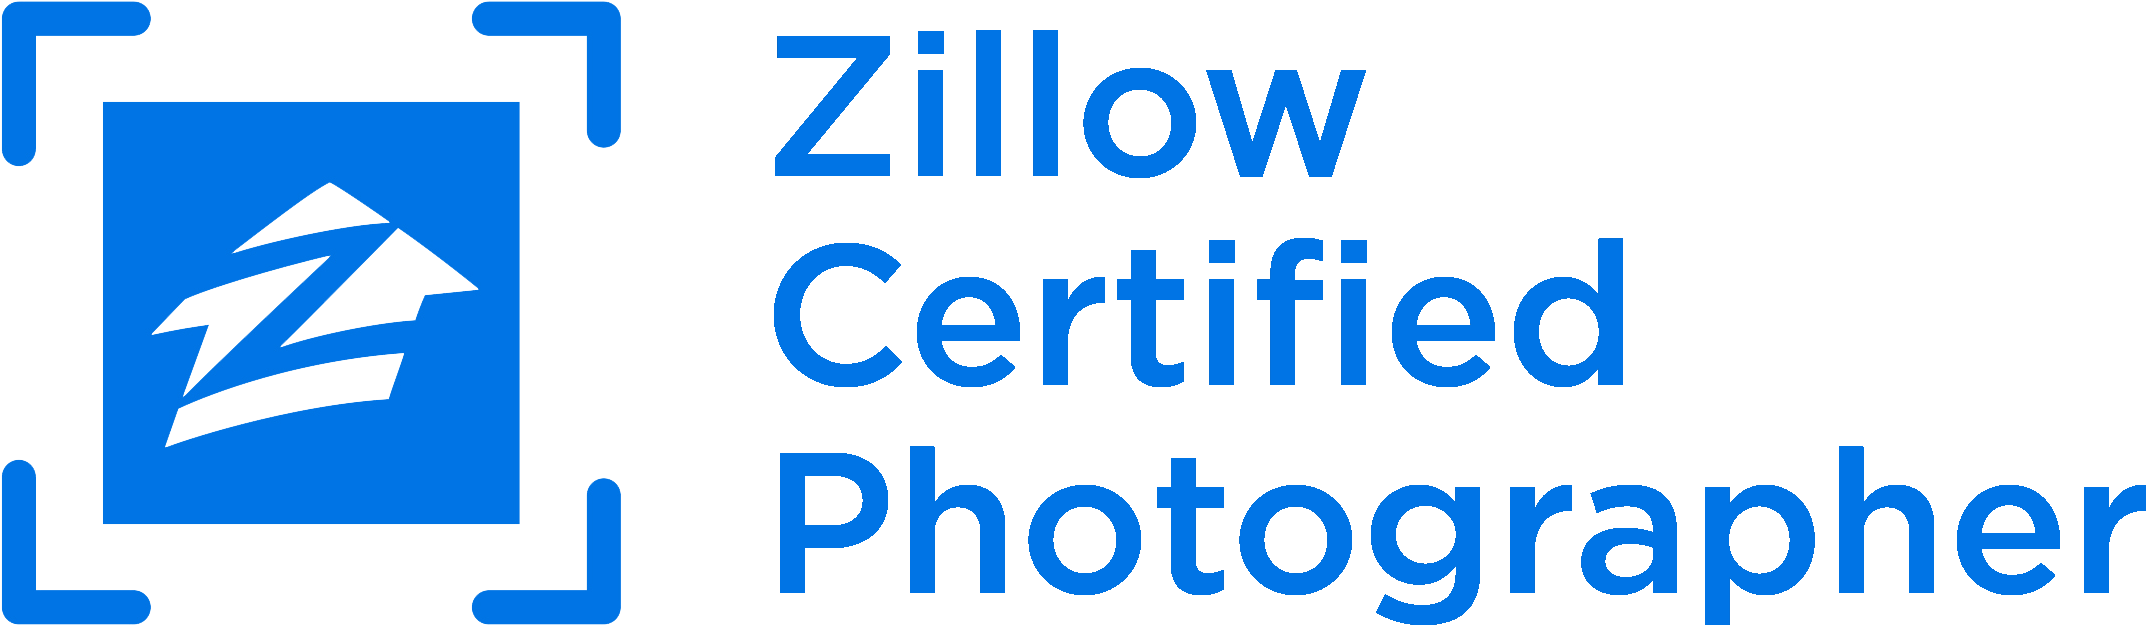 313-3133142_learn-more-official-zillow-certified-photographer-zillow-certified.png